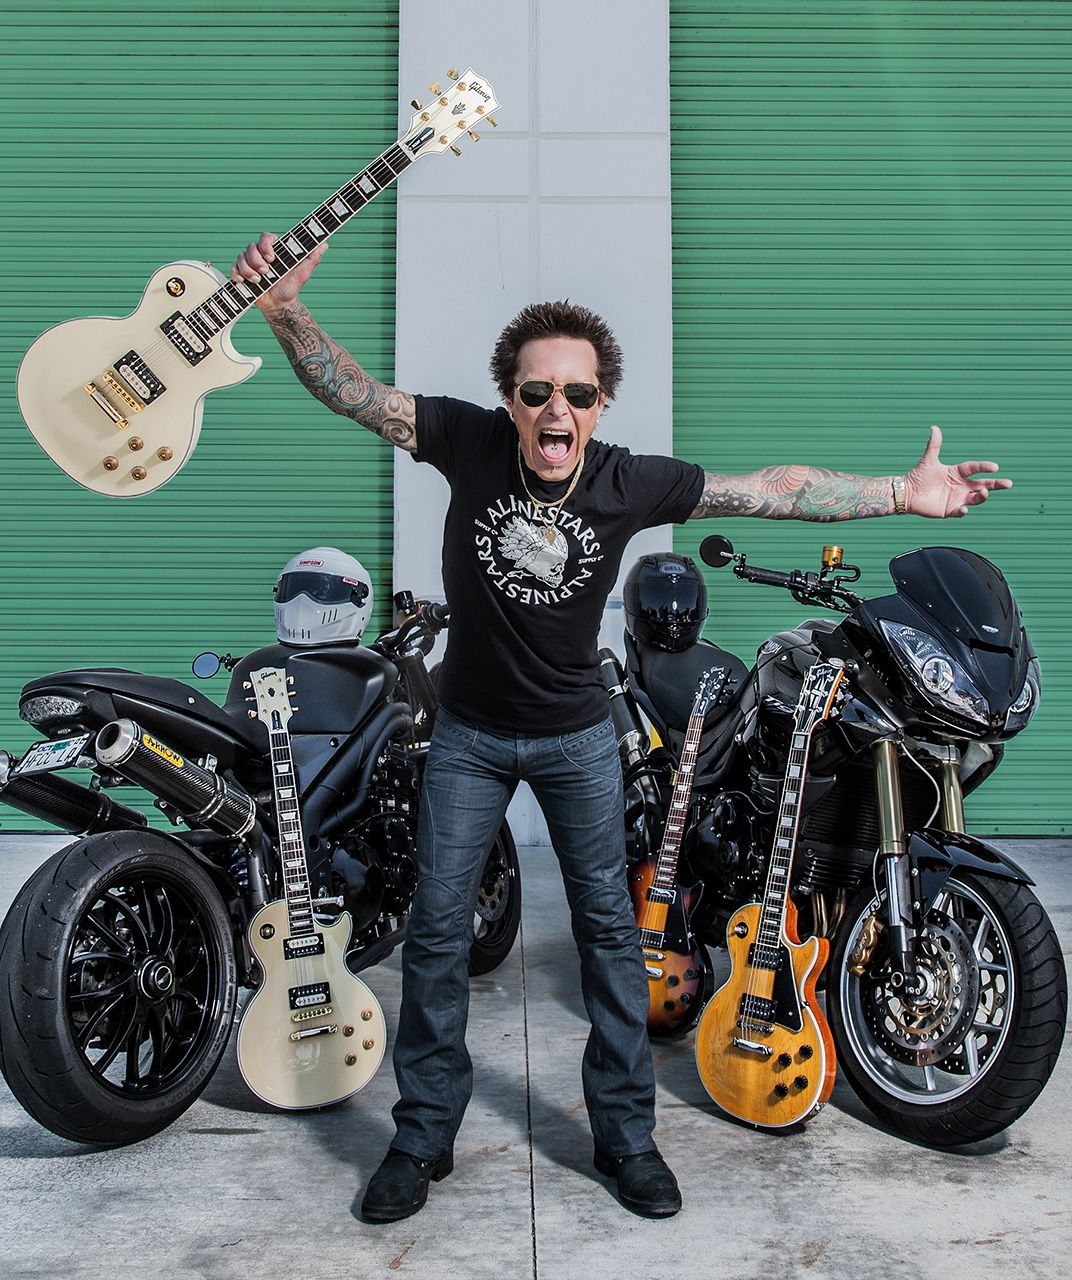 <strong>Rhythm Guitarist for Billy Idol, Billy Morrison:</strong> Billy Morrison's father raced in the Isle of Man TT and his uncle was a grand prix racer, so the apple doesn't fall too far from the tree in terms of being a motorcycle enthusiast. Here Morrison is posing with two of his main passions, motorcycles and guitars.